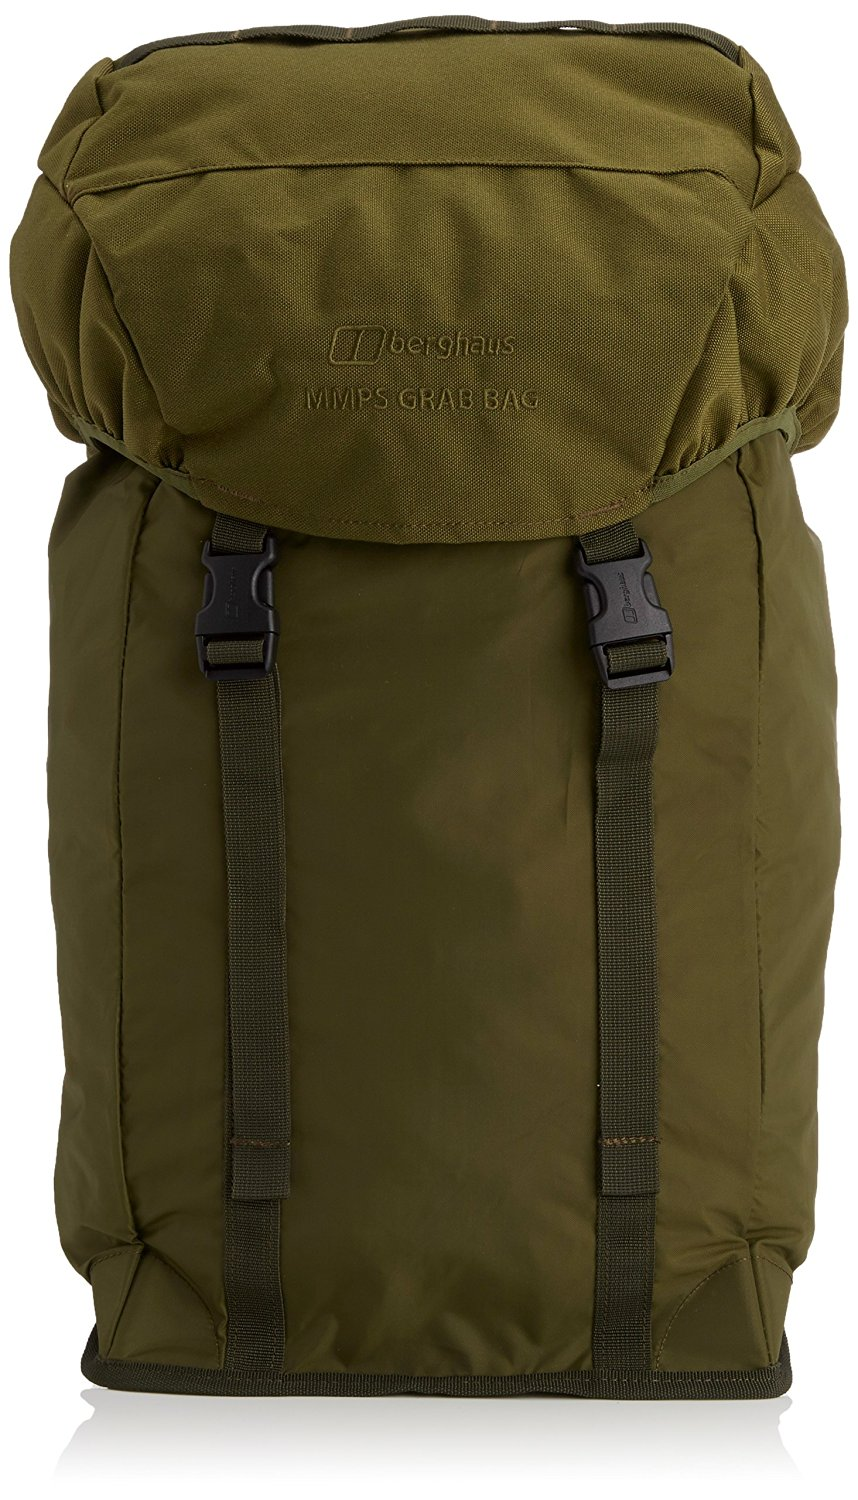 look for nice shoes details for Buy Berghaus Military MMPS Grab Bag Backpack One Size Cedar ...